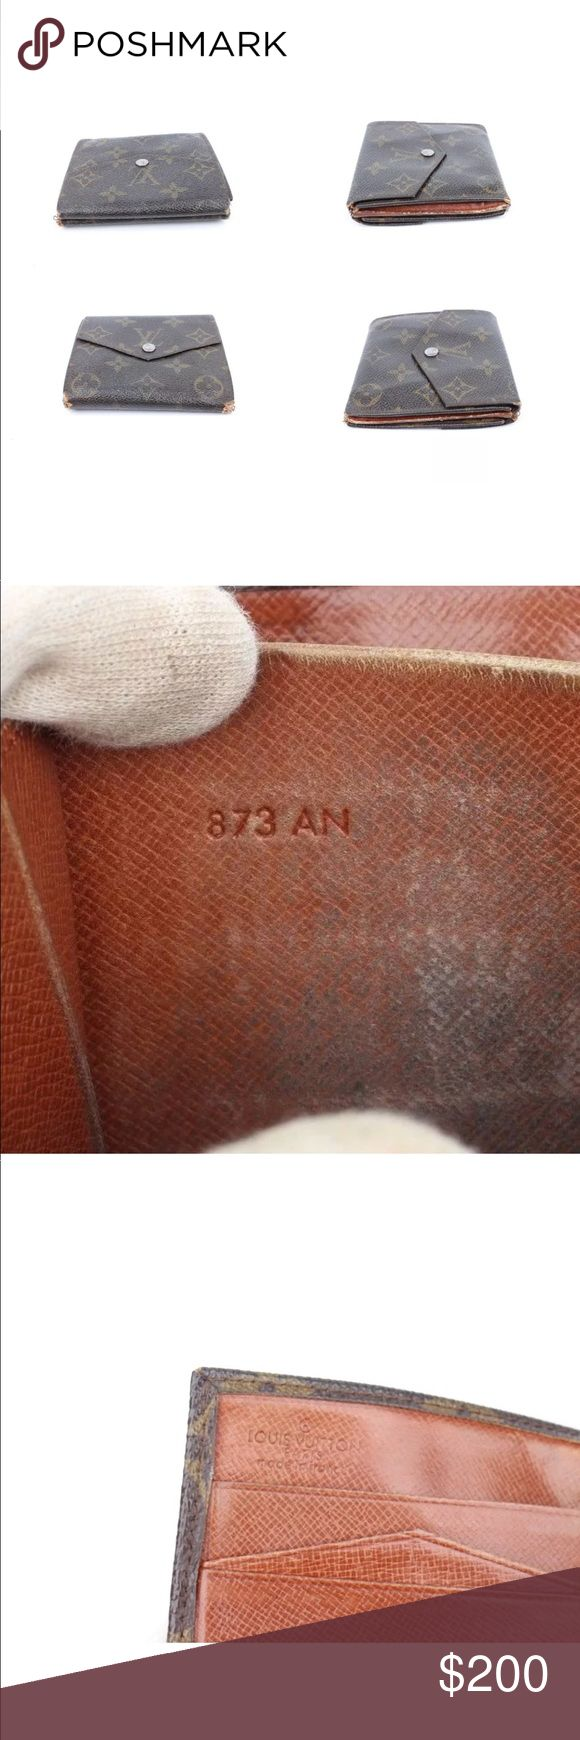 Authentic Louis Vuitton Monogram Elise Wallet Authentic Louis Vuitton Monogram Elise Wallet 873 rare in used condition as shown in the pictures Louis Vuitton Bags Wallets